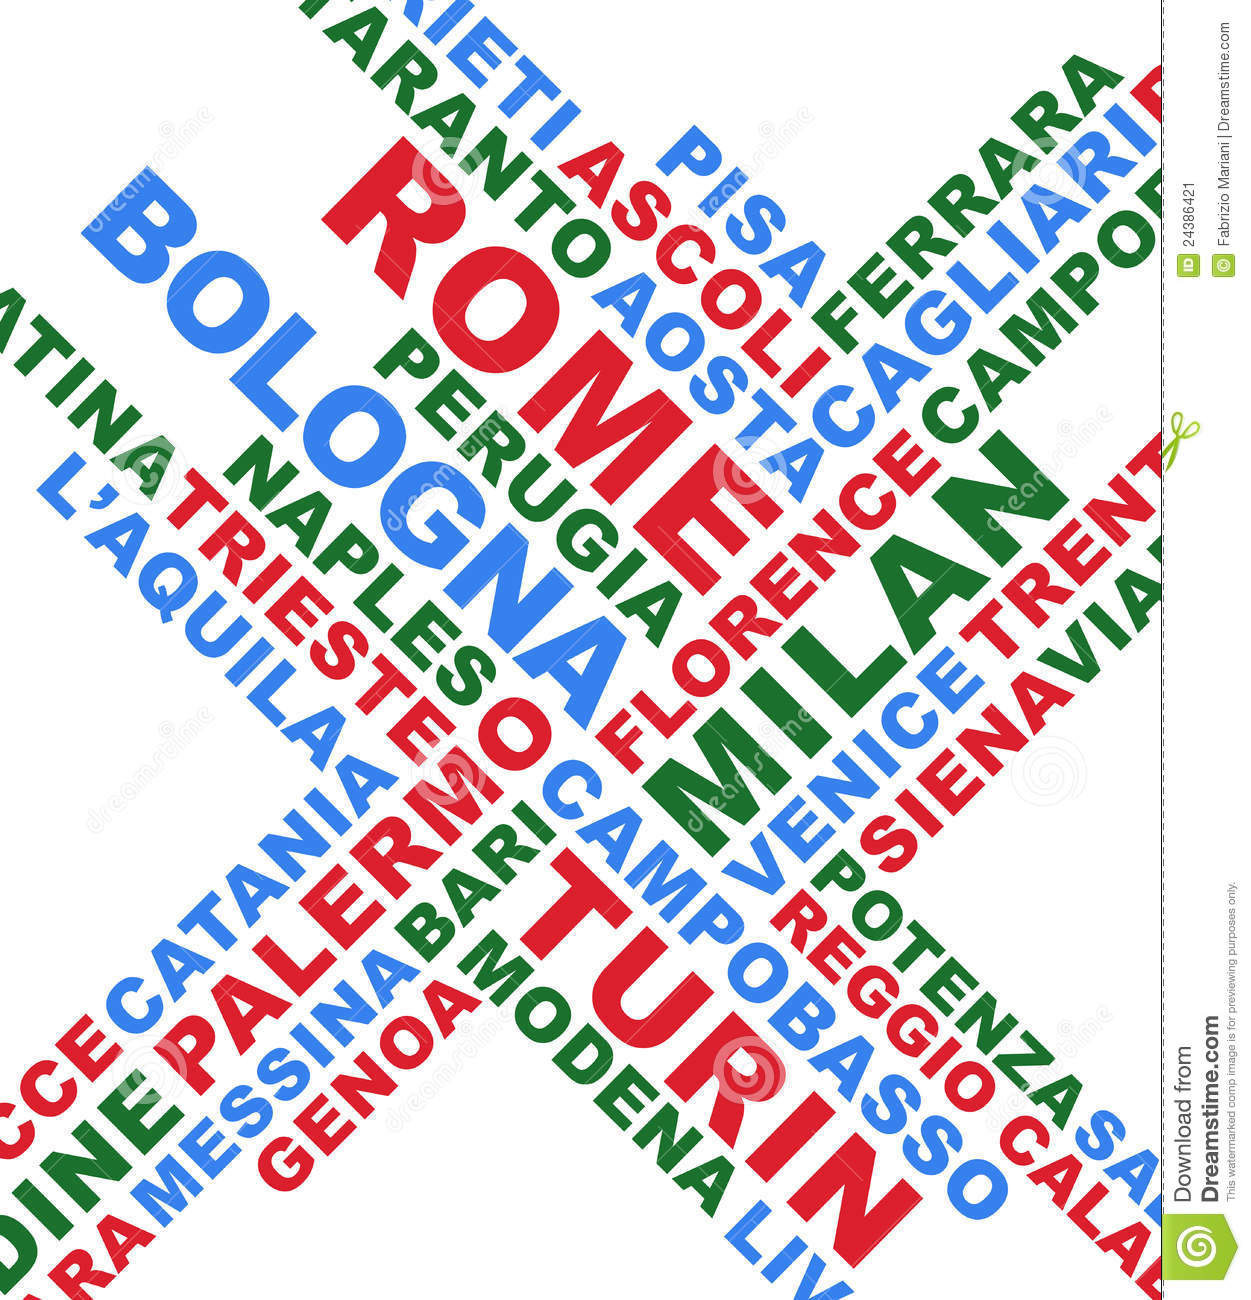 Italian City Names Collage Stock Image - Image: 24386421